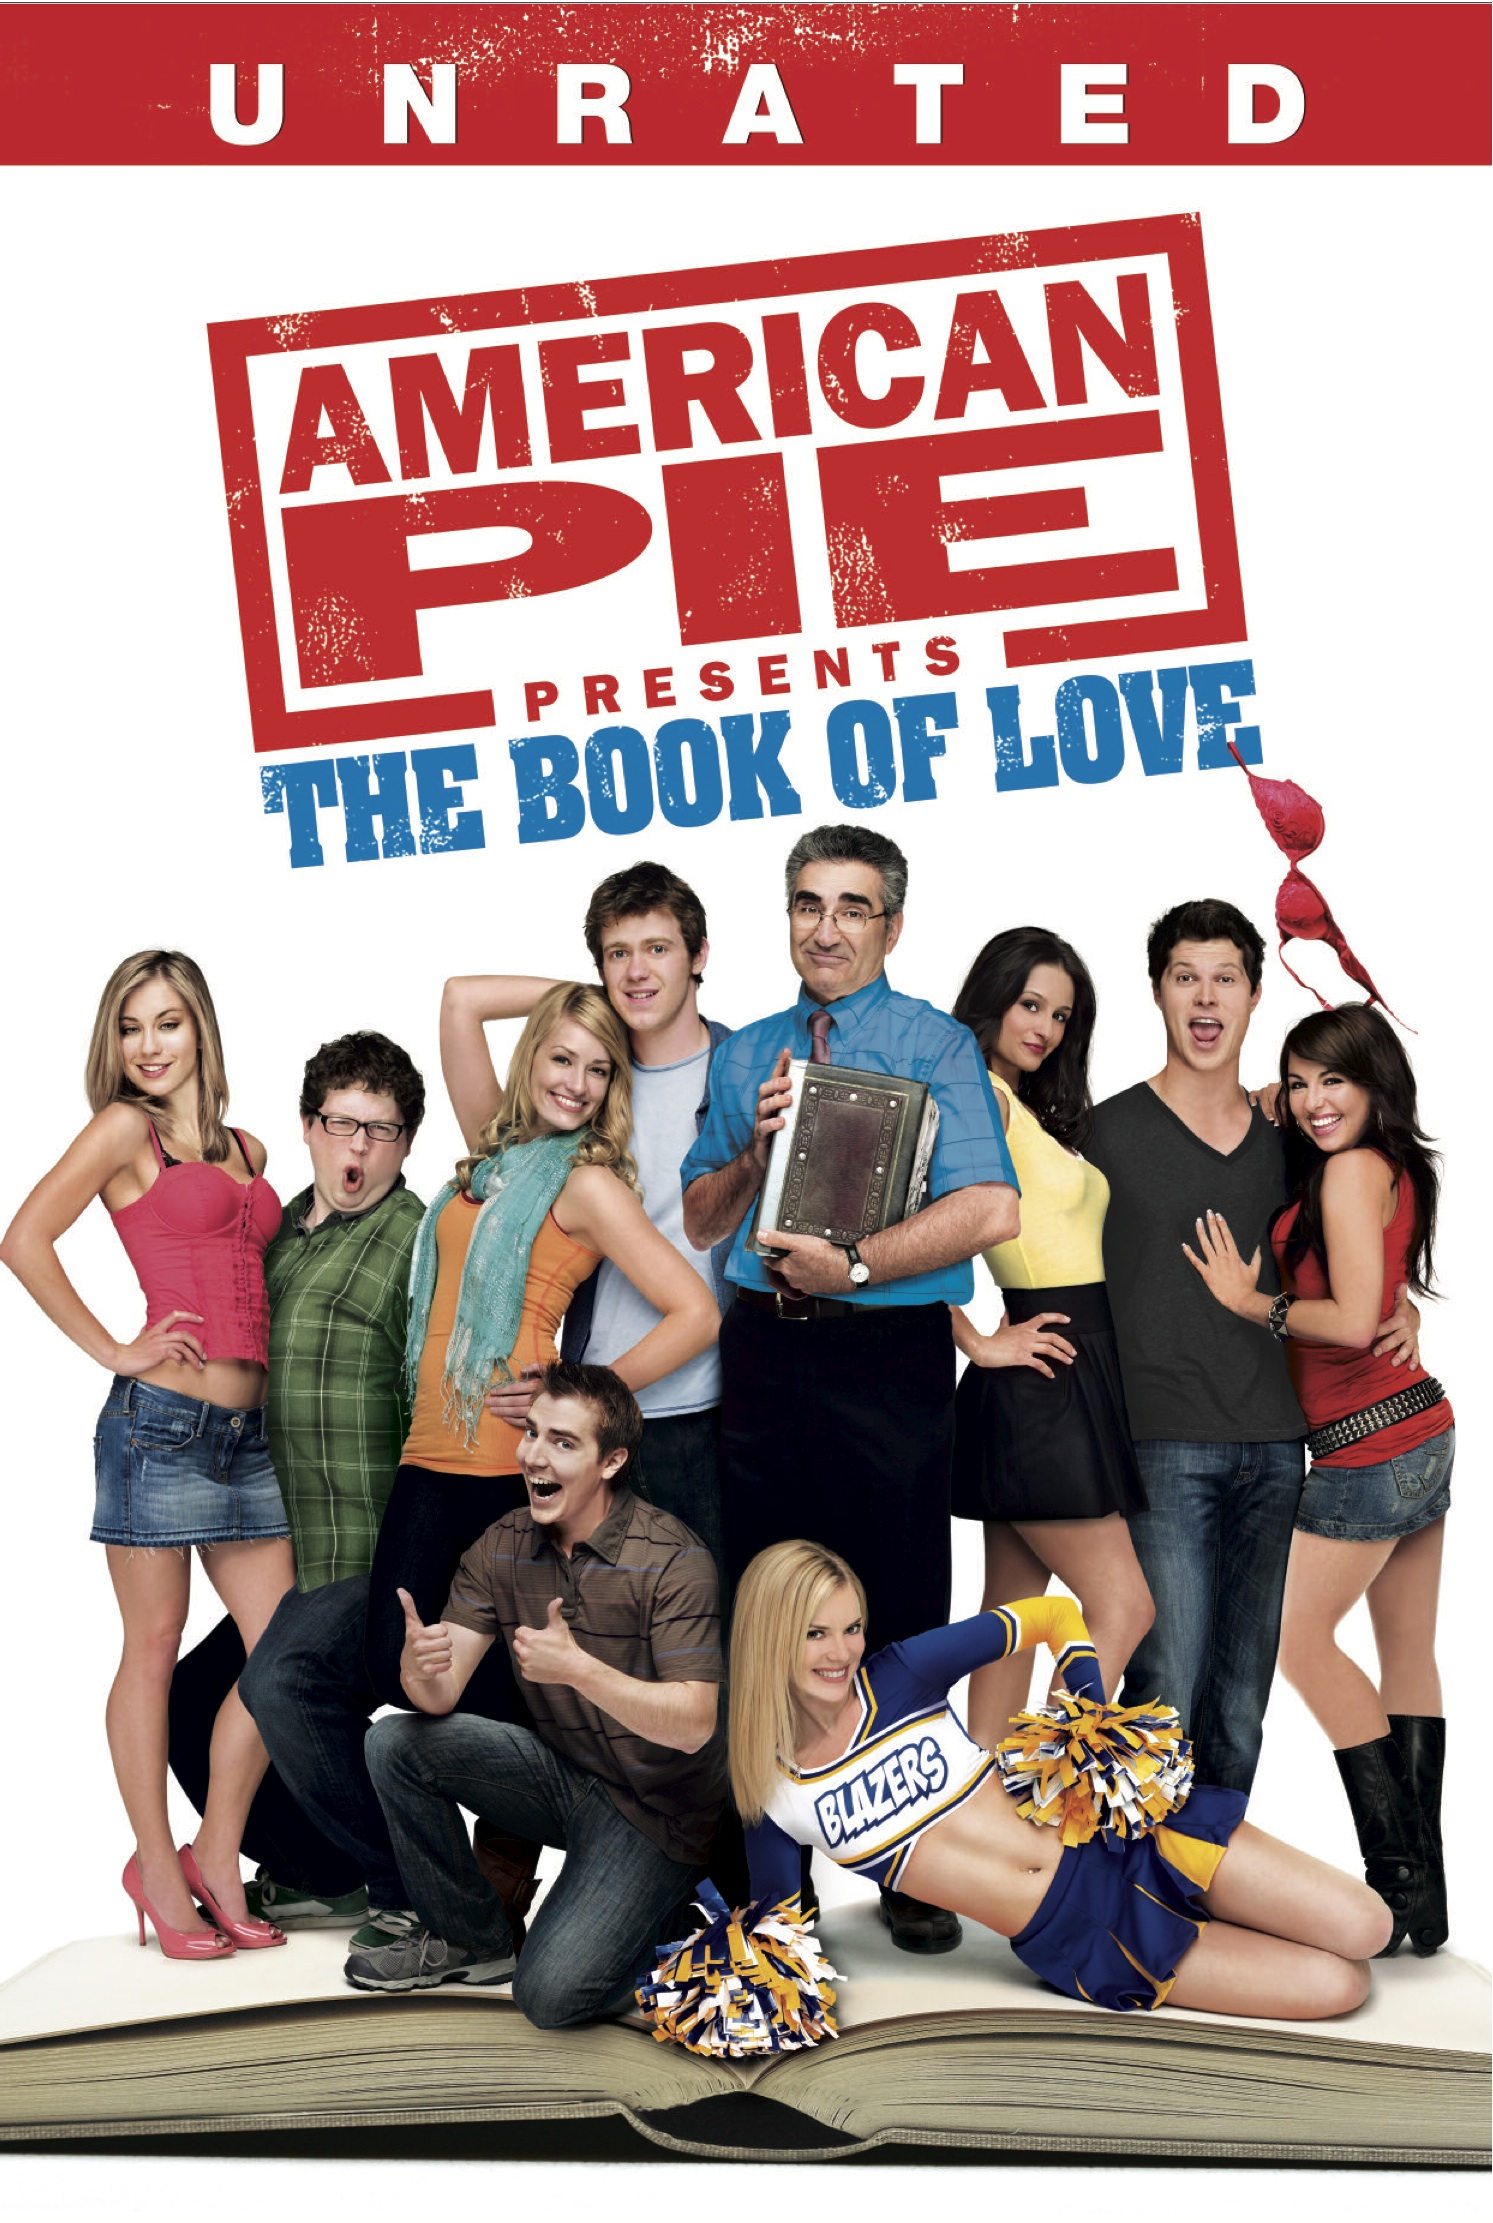 Amerikan Pastası 7 Aşk Kitabı (American Pie Presents 7 Book Of Love) İndir